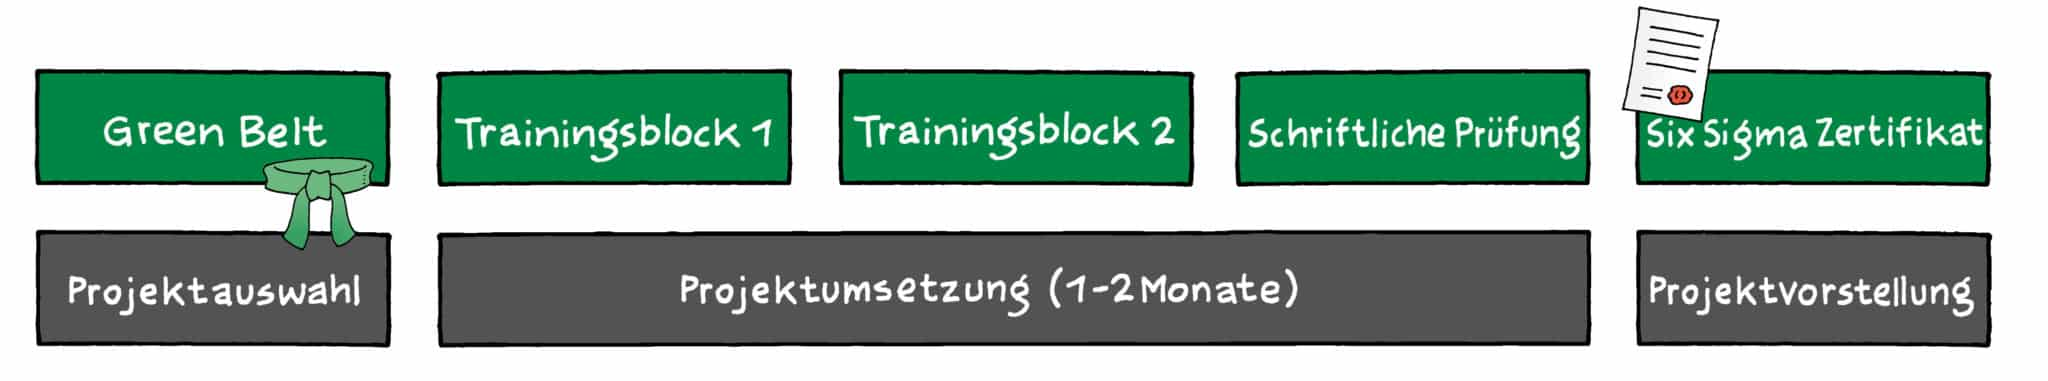 Six Sigma Green Belt Ausbildung | Training | Seminar (9+1 Tage)